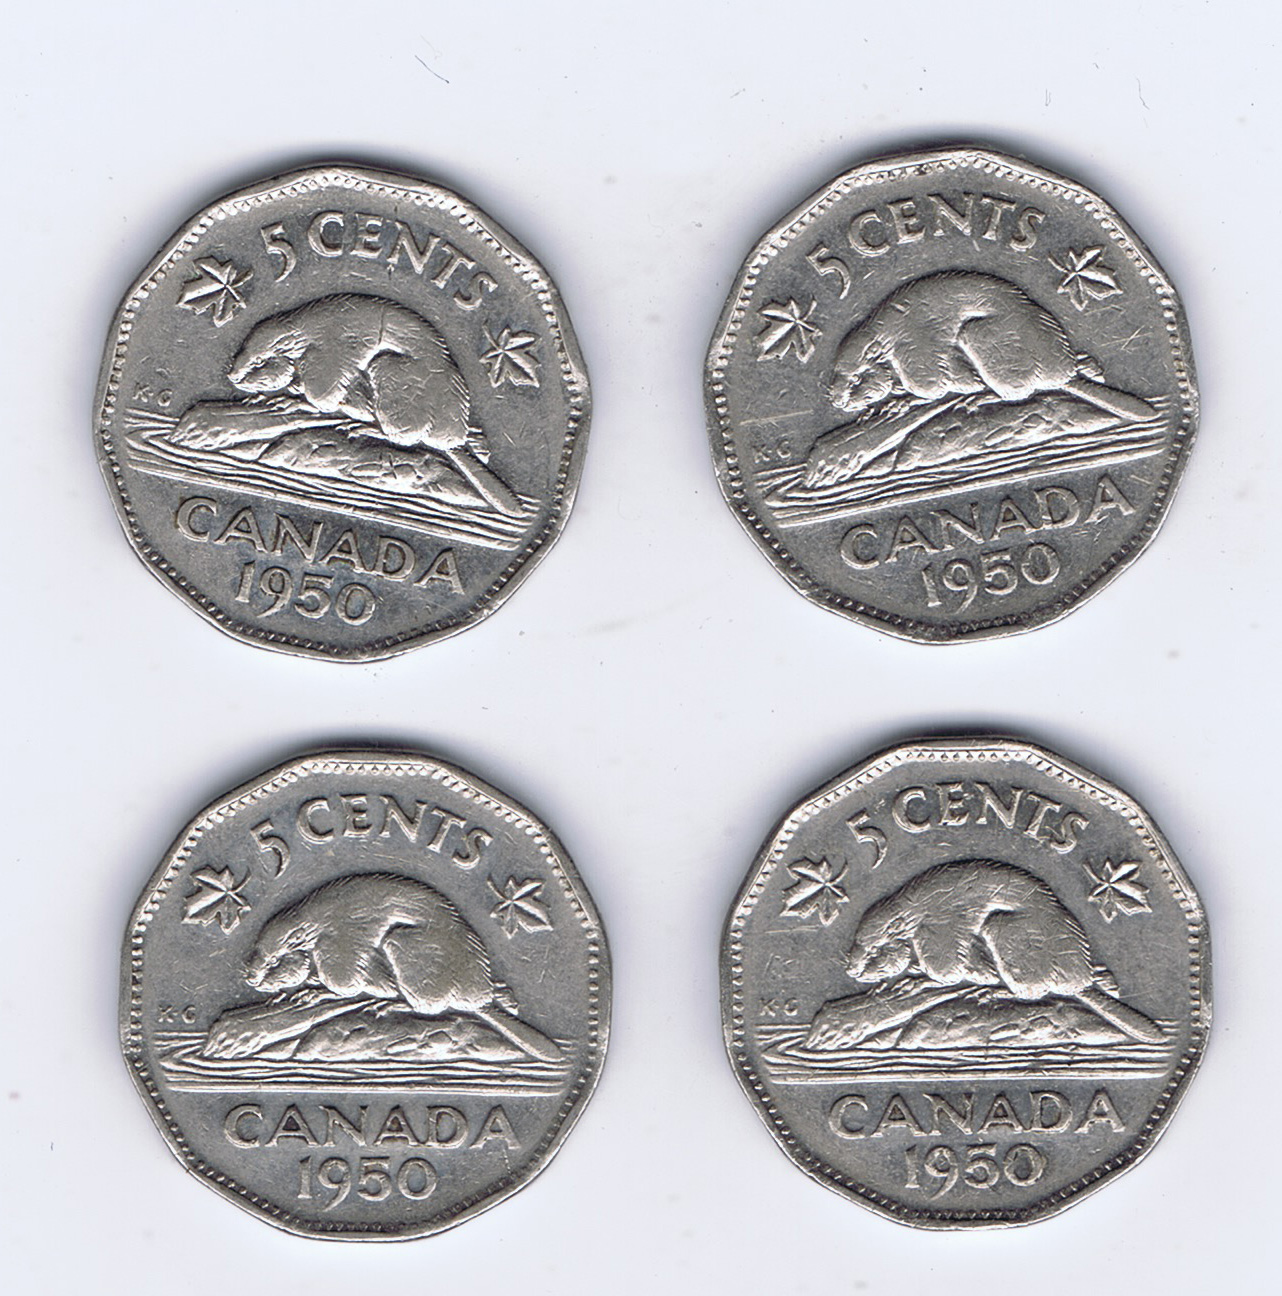 Canada 1950 Nickel Pictures George VI & Beaver - Roll of 40